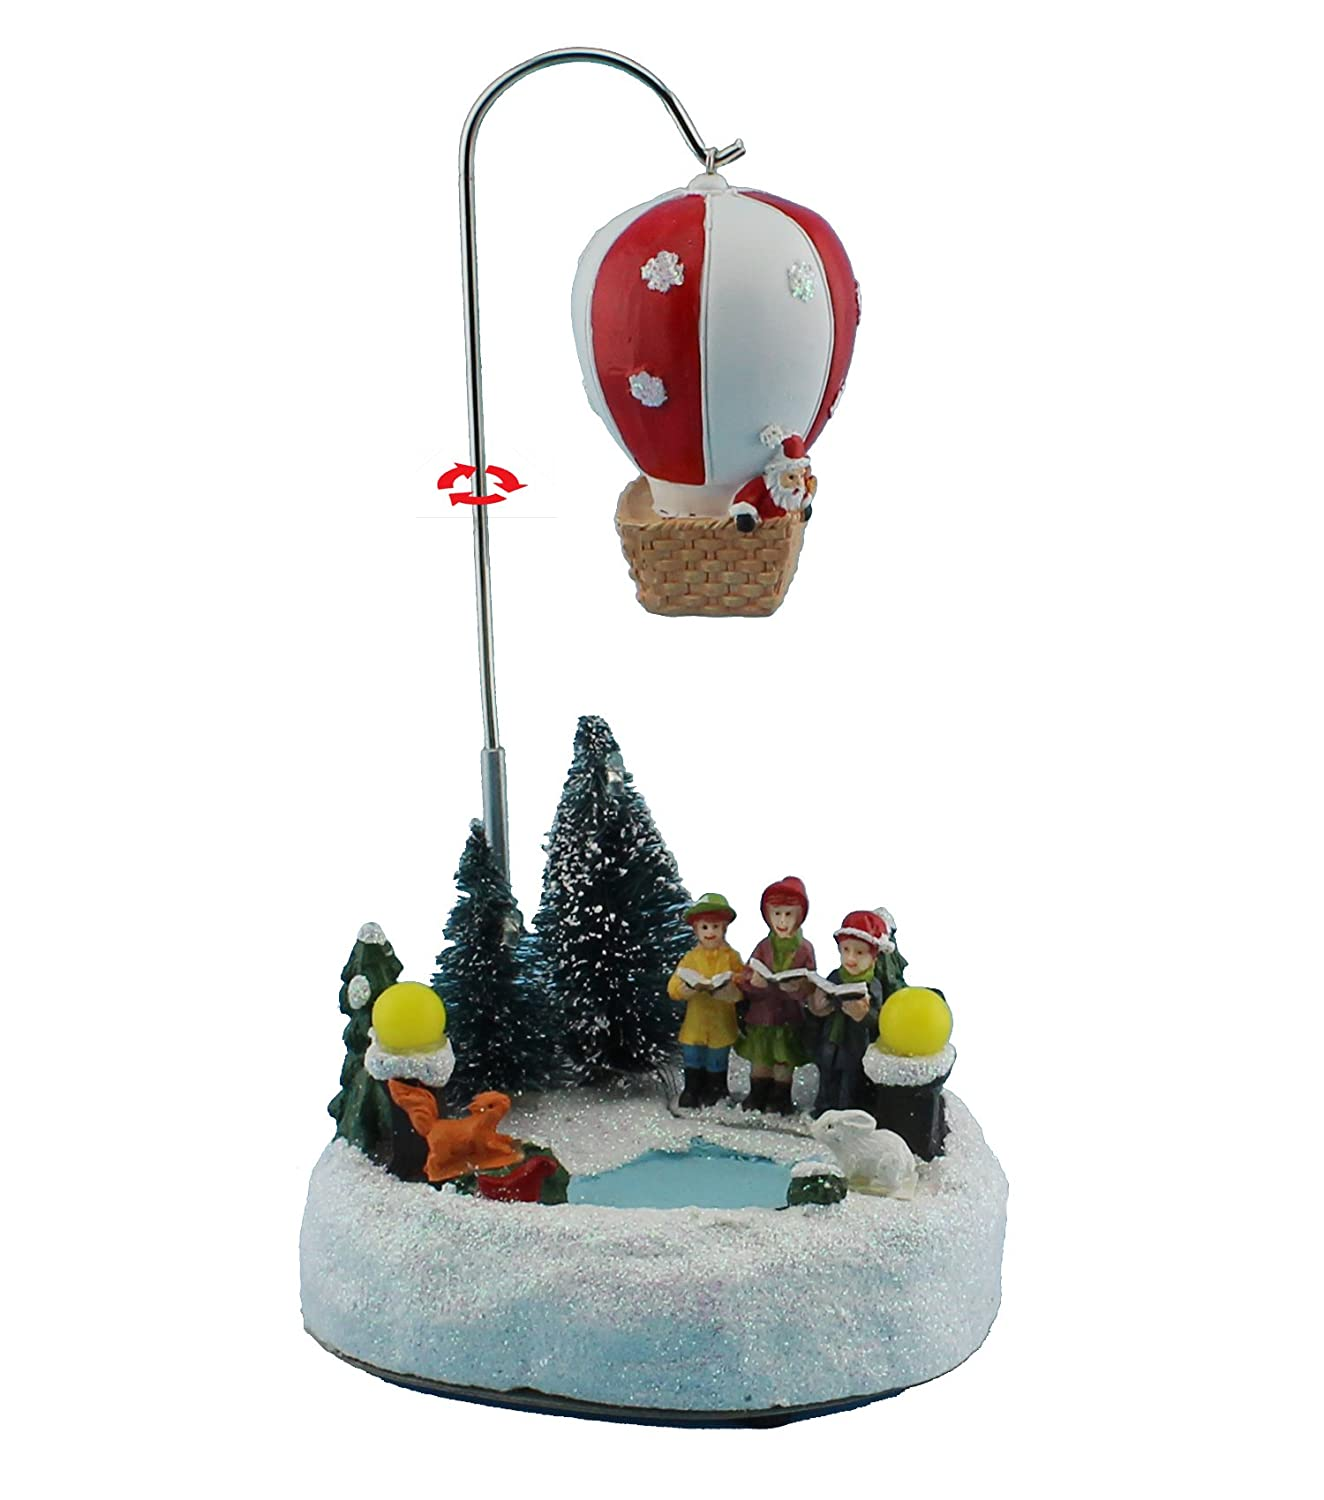 innodept12 Christmas Decor Animated Rotating Collectible Figurine Building & Choirs with Led Light and Music Holiday Decoration & Gift (Rolling Air Ballon)